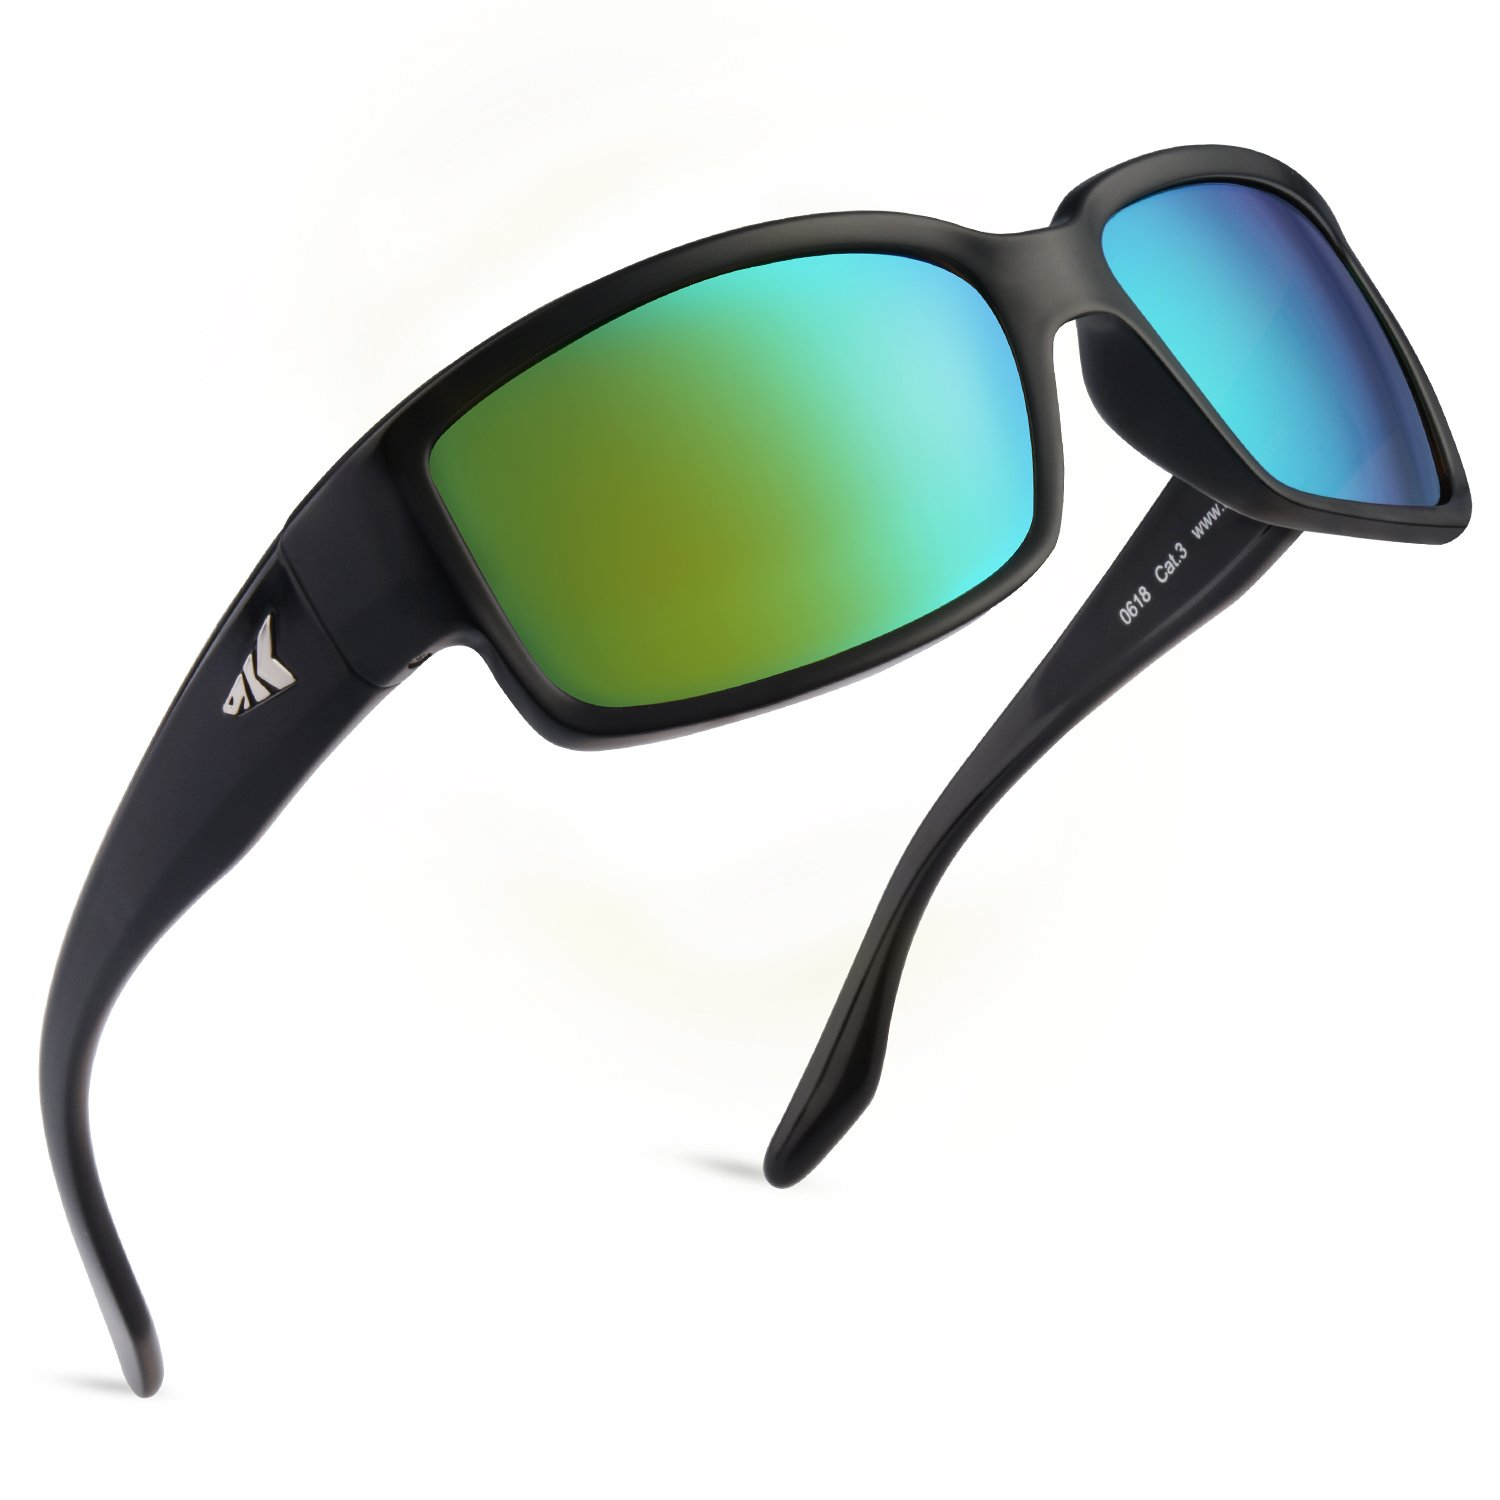 b8010ab1148d Amazon.com   KastKing Skidaway Polarized Sport Sunglasses for Men and  Women